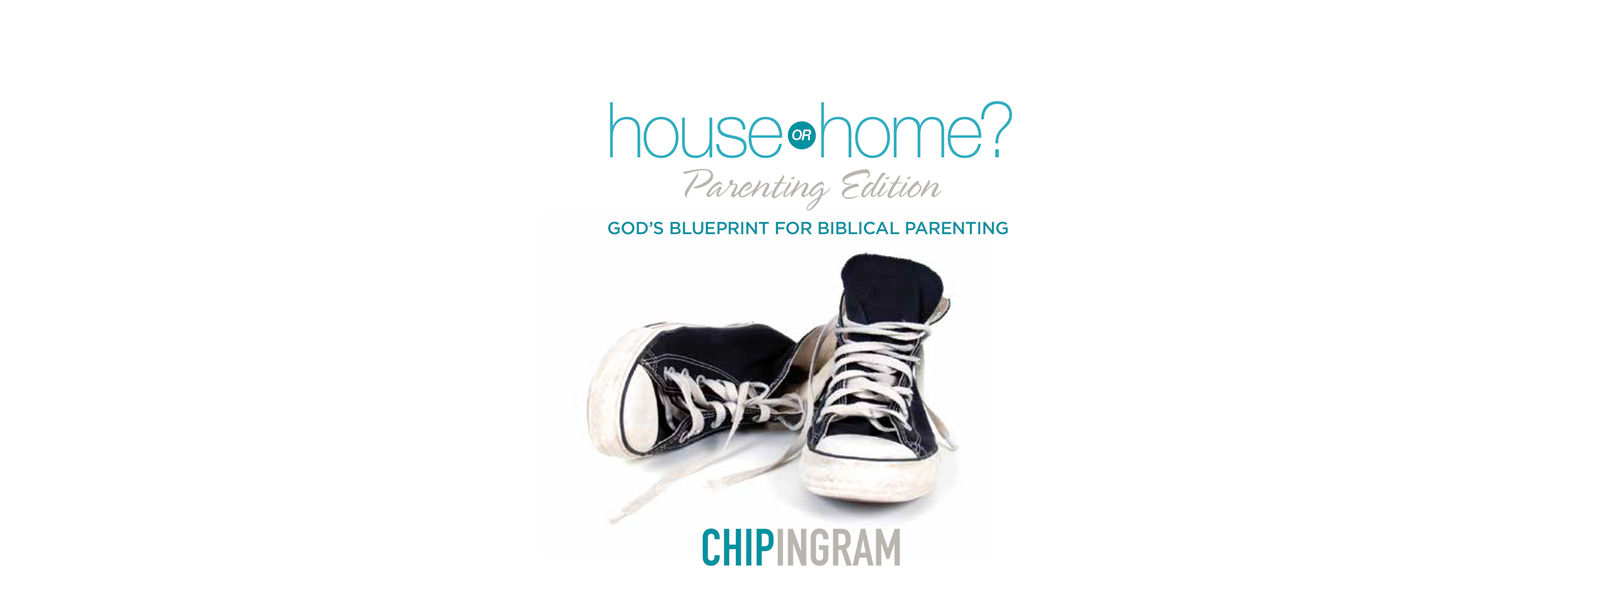 House or Home? Parenting Edition